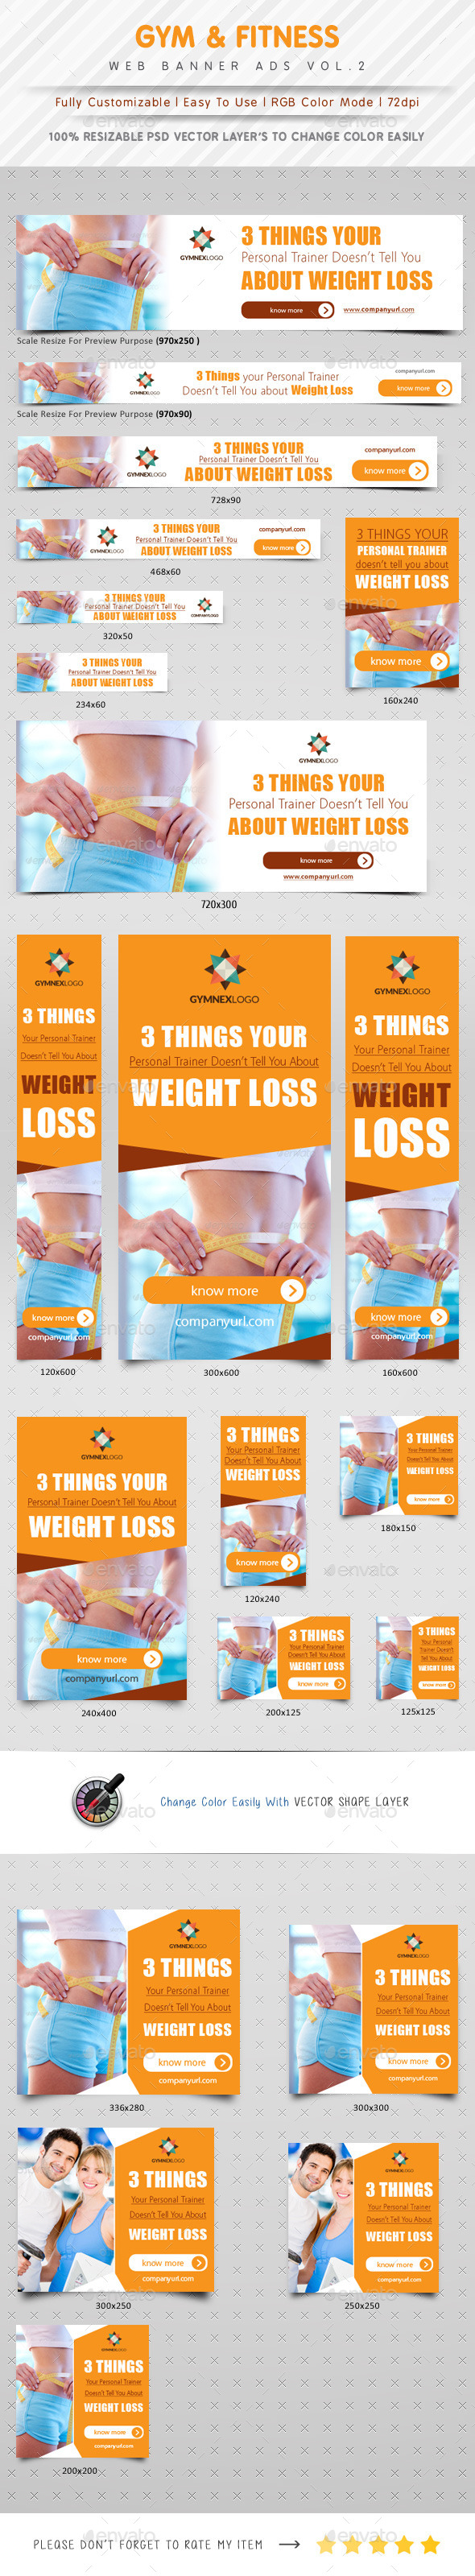 Gym & Fitness Web Banner Ads Vol. 2 - Banners & Ads Web Elements